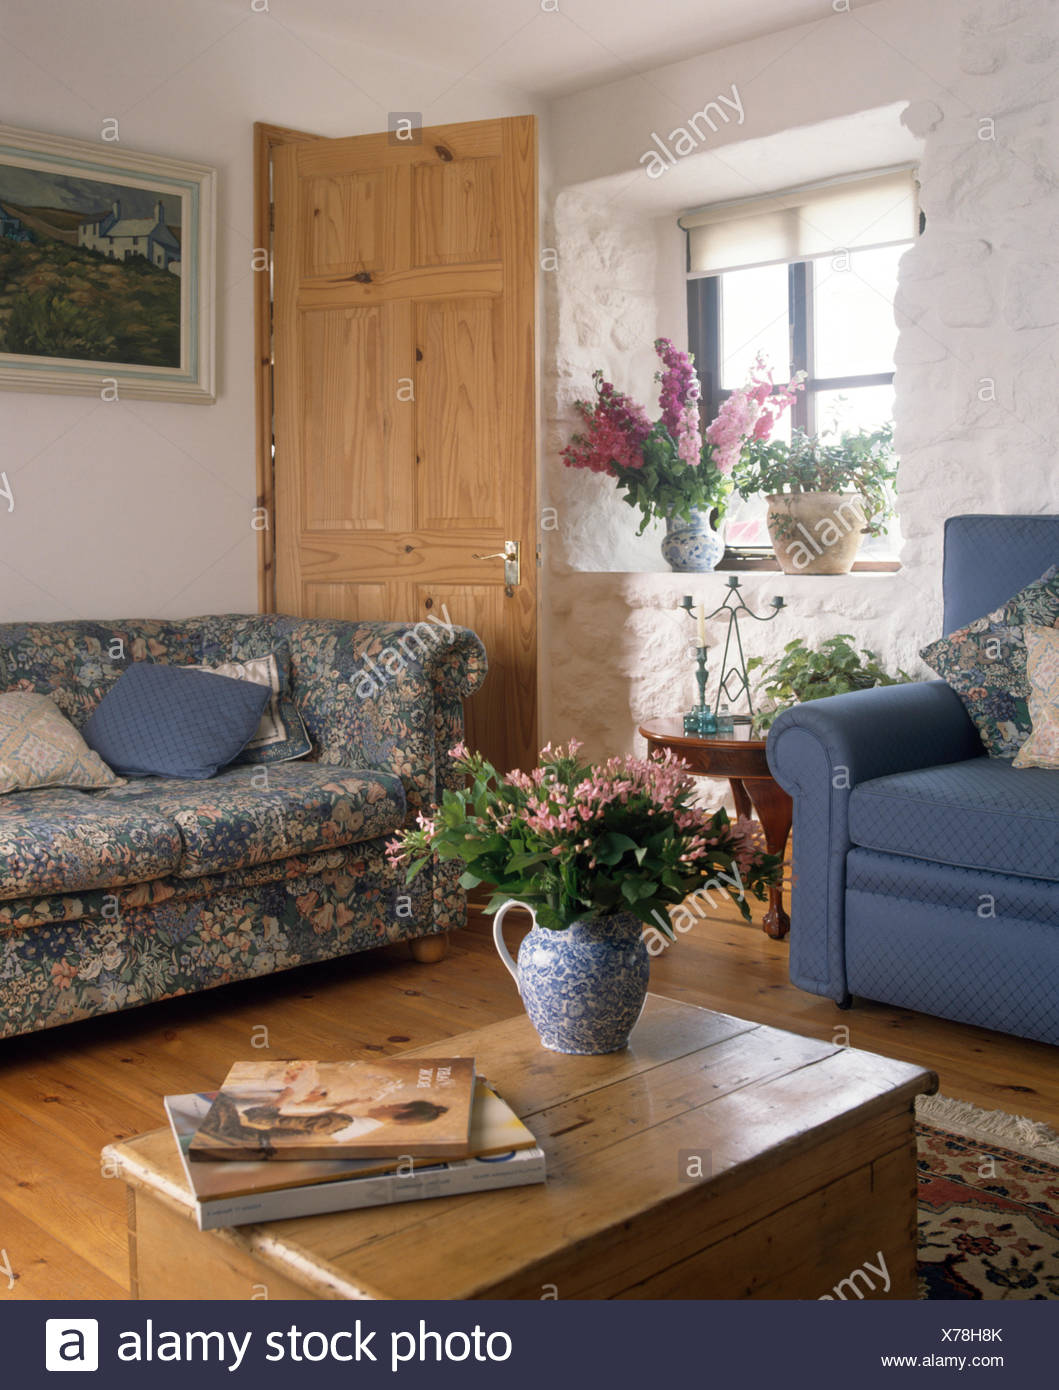 Old pine chest and blue patterned chesterfield sofa with a blue armchair in a nineties cottage